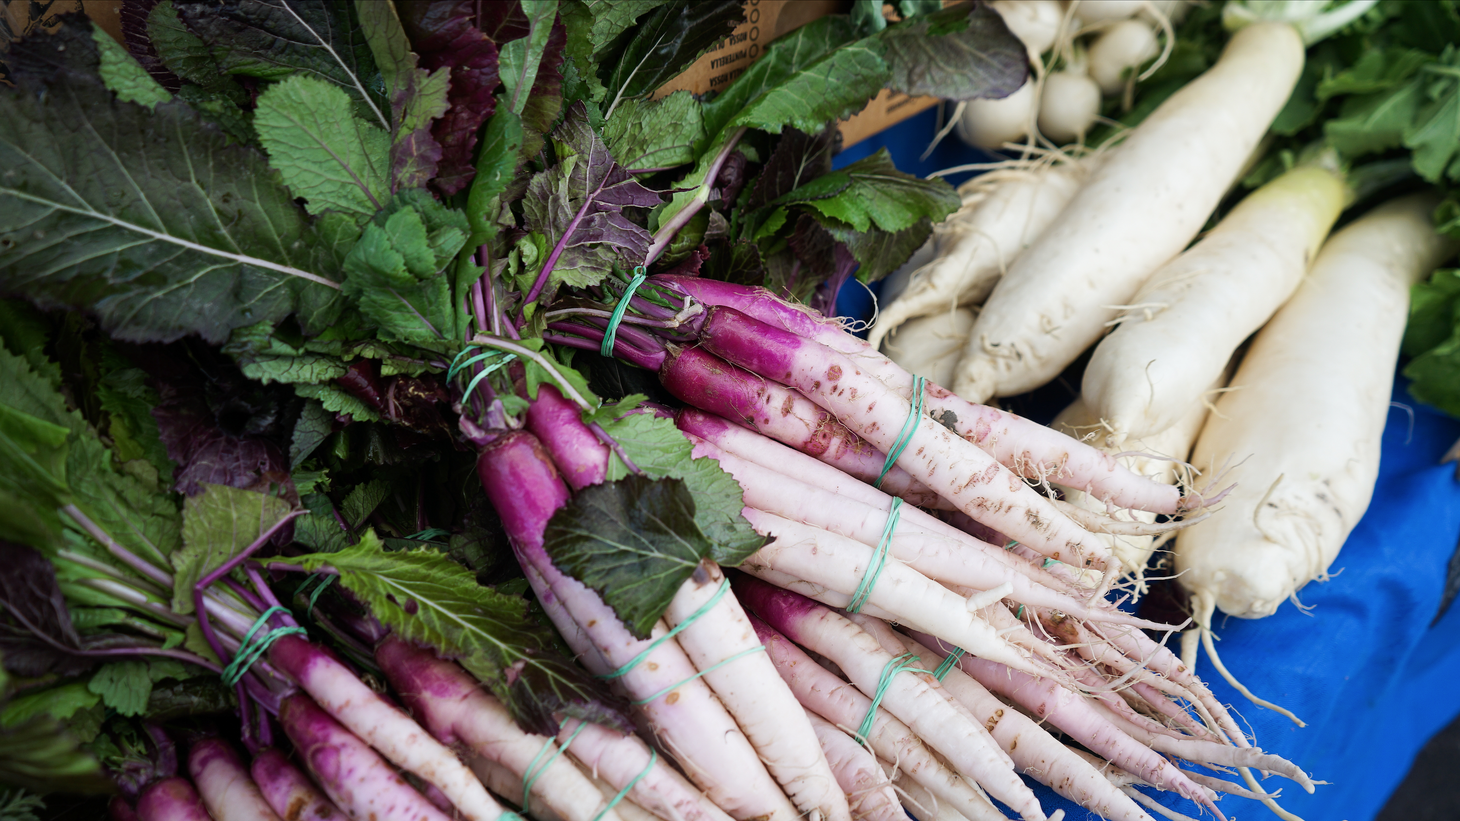 County Line Harvest at the Santa Monica Farmer's Market is offering two Japanese varieties of turnips, including the hinona kabu, an elongated turnip which is popular for pickling and has a mustard green top.